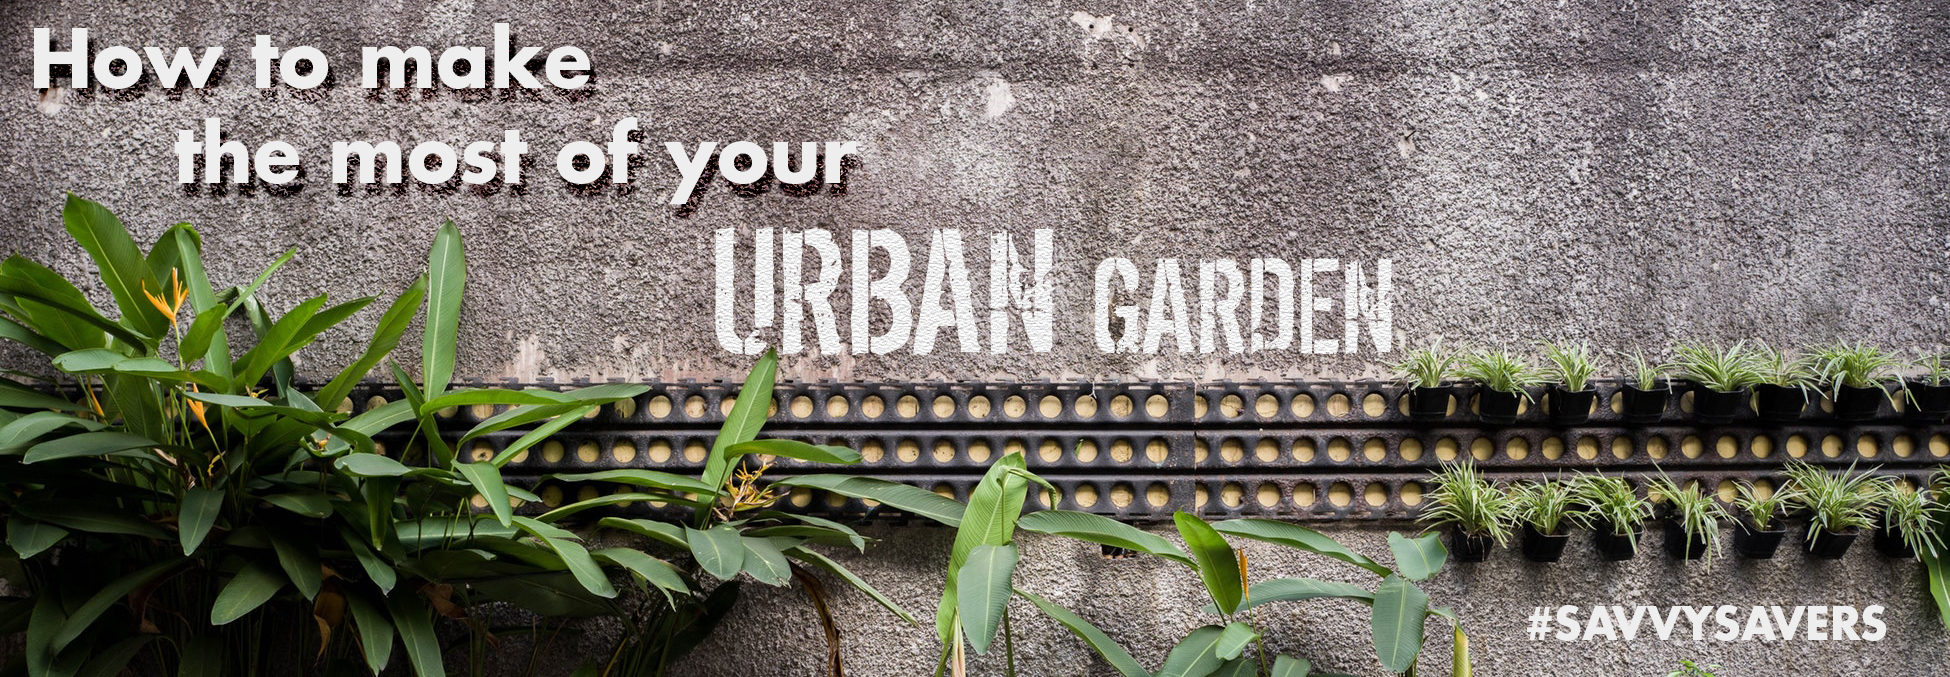 How To Make The Most of Your Urban Garden